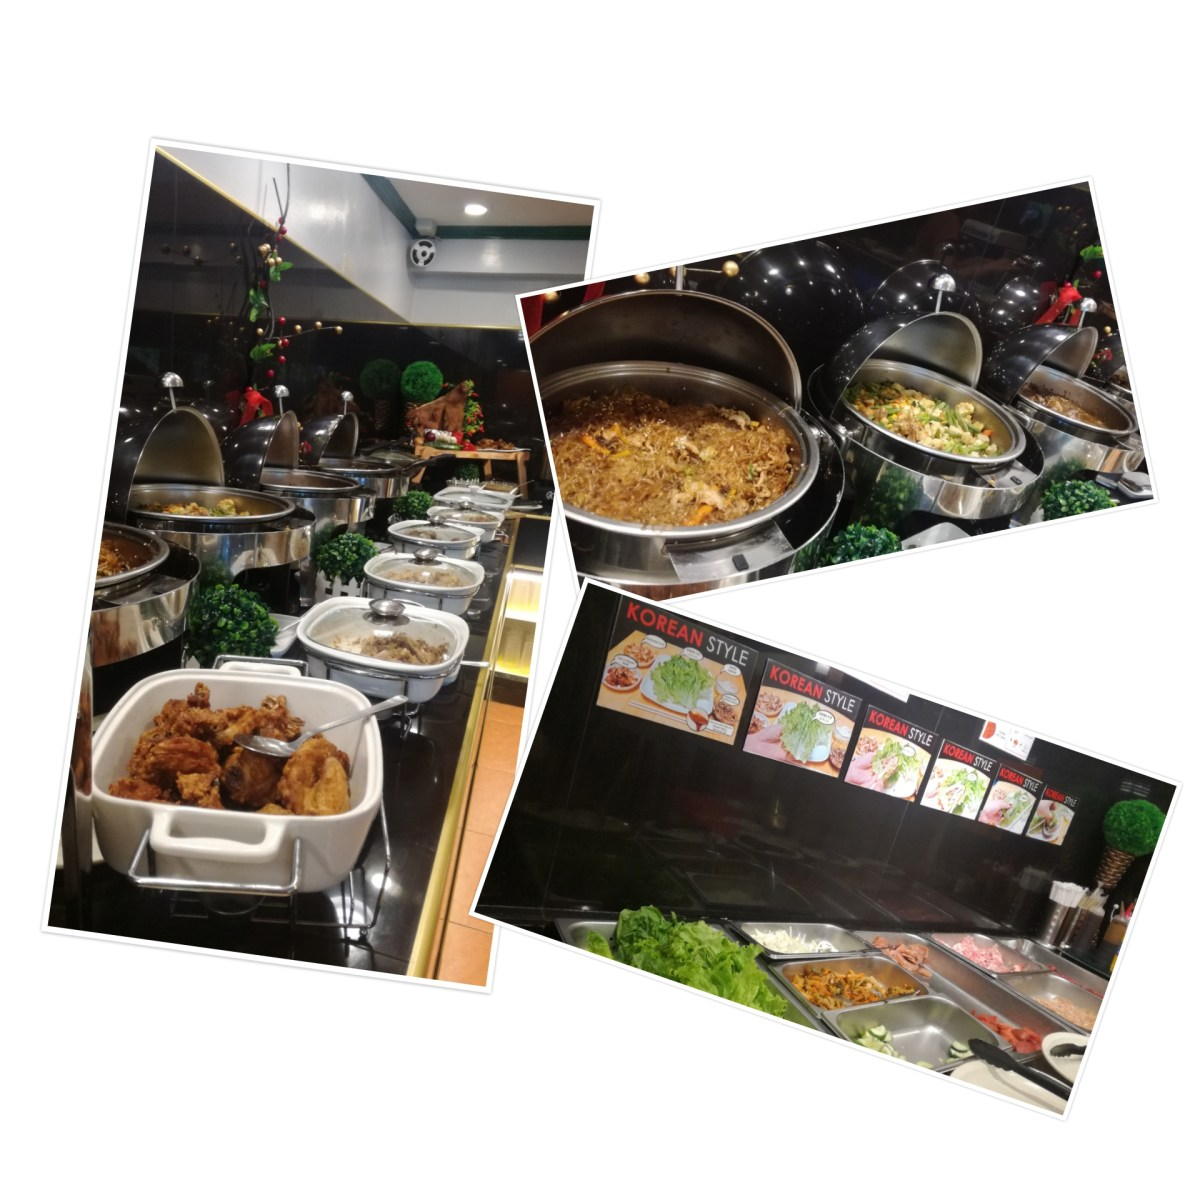 Sumptuous Affordable Buffet Hidden in the South - Lucitas Buffet and Grill